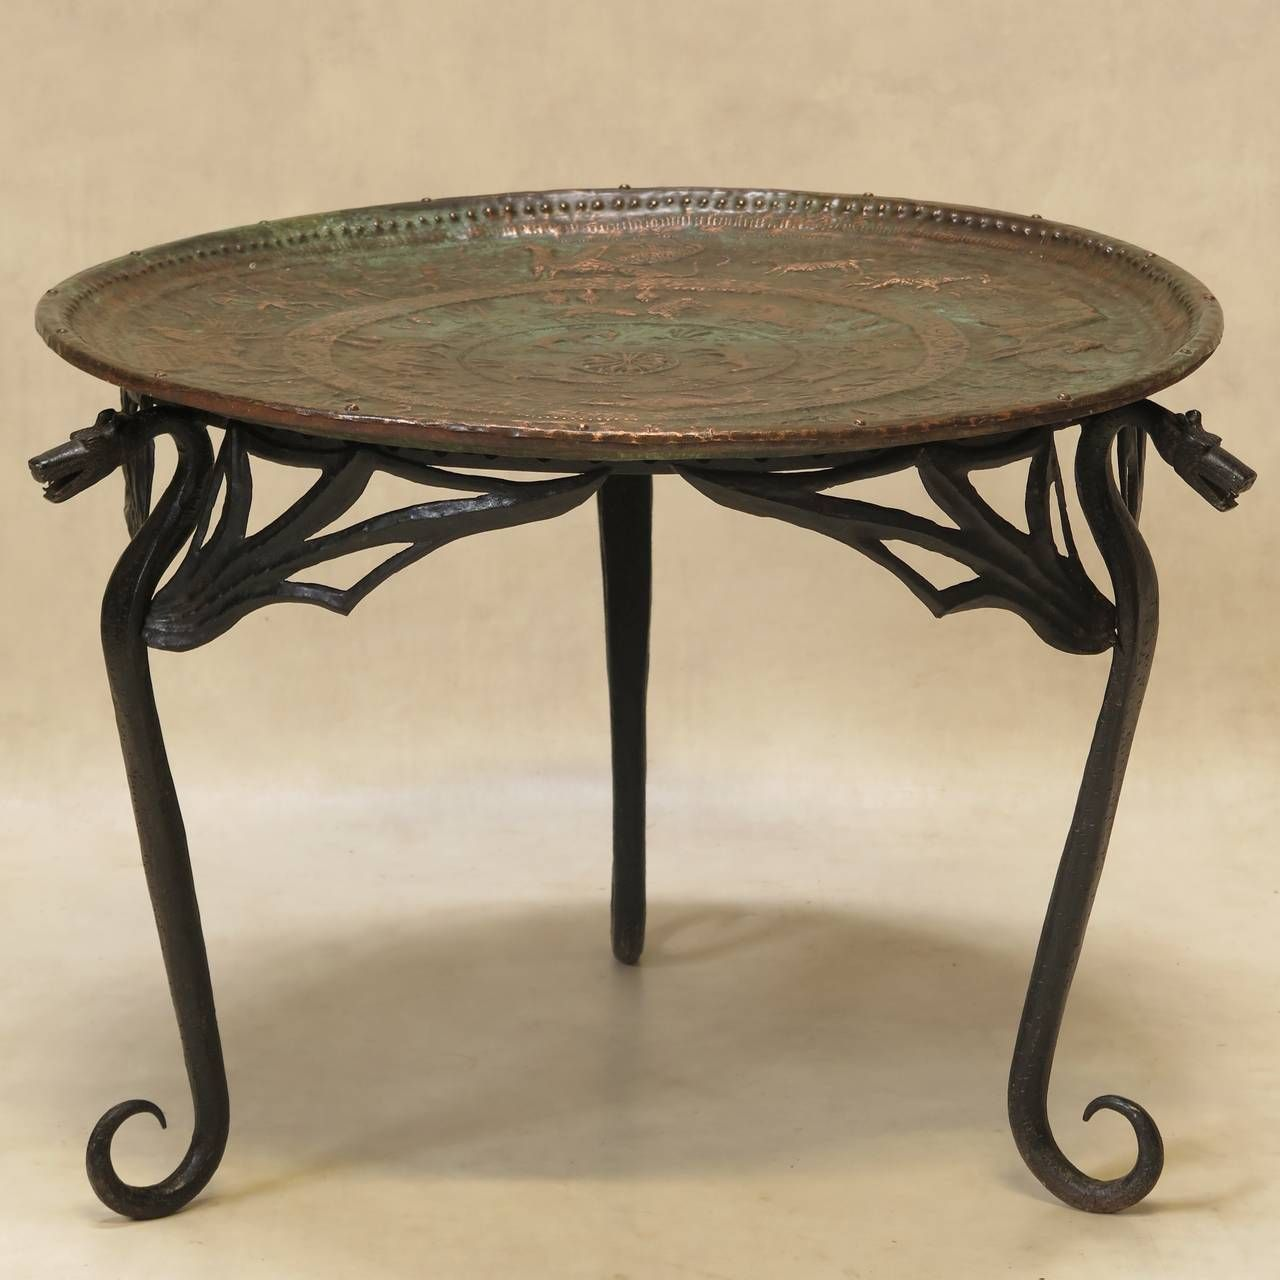 Image Result For Copper Top Table Coffee Table Inspiration Coffee Table Coffee Table Furniture [ 1280 x 1280 Pixel ]